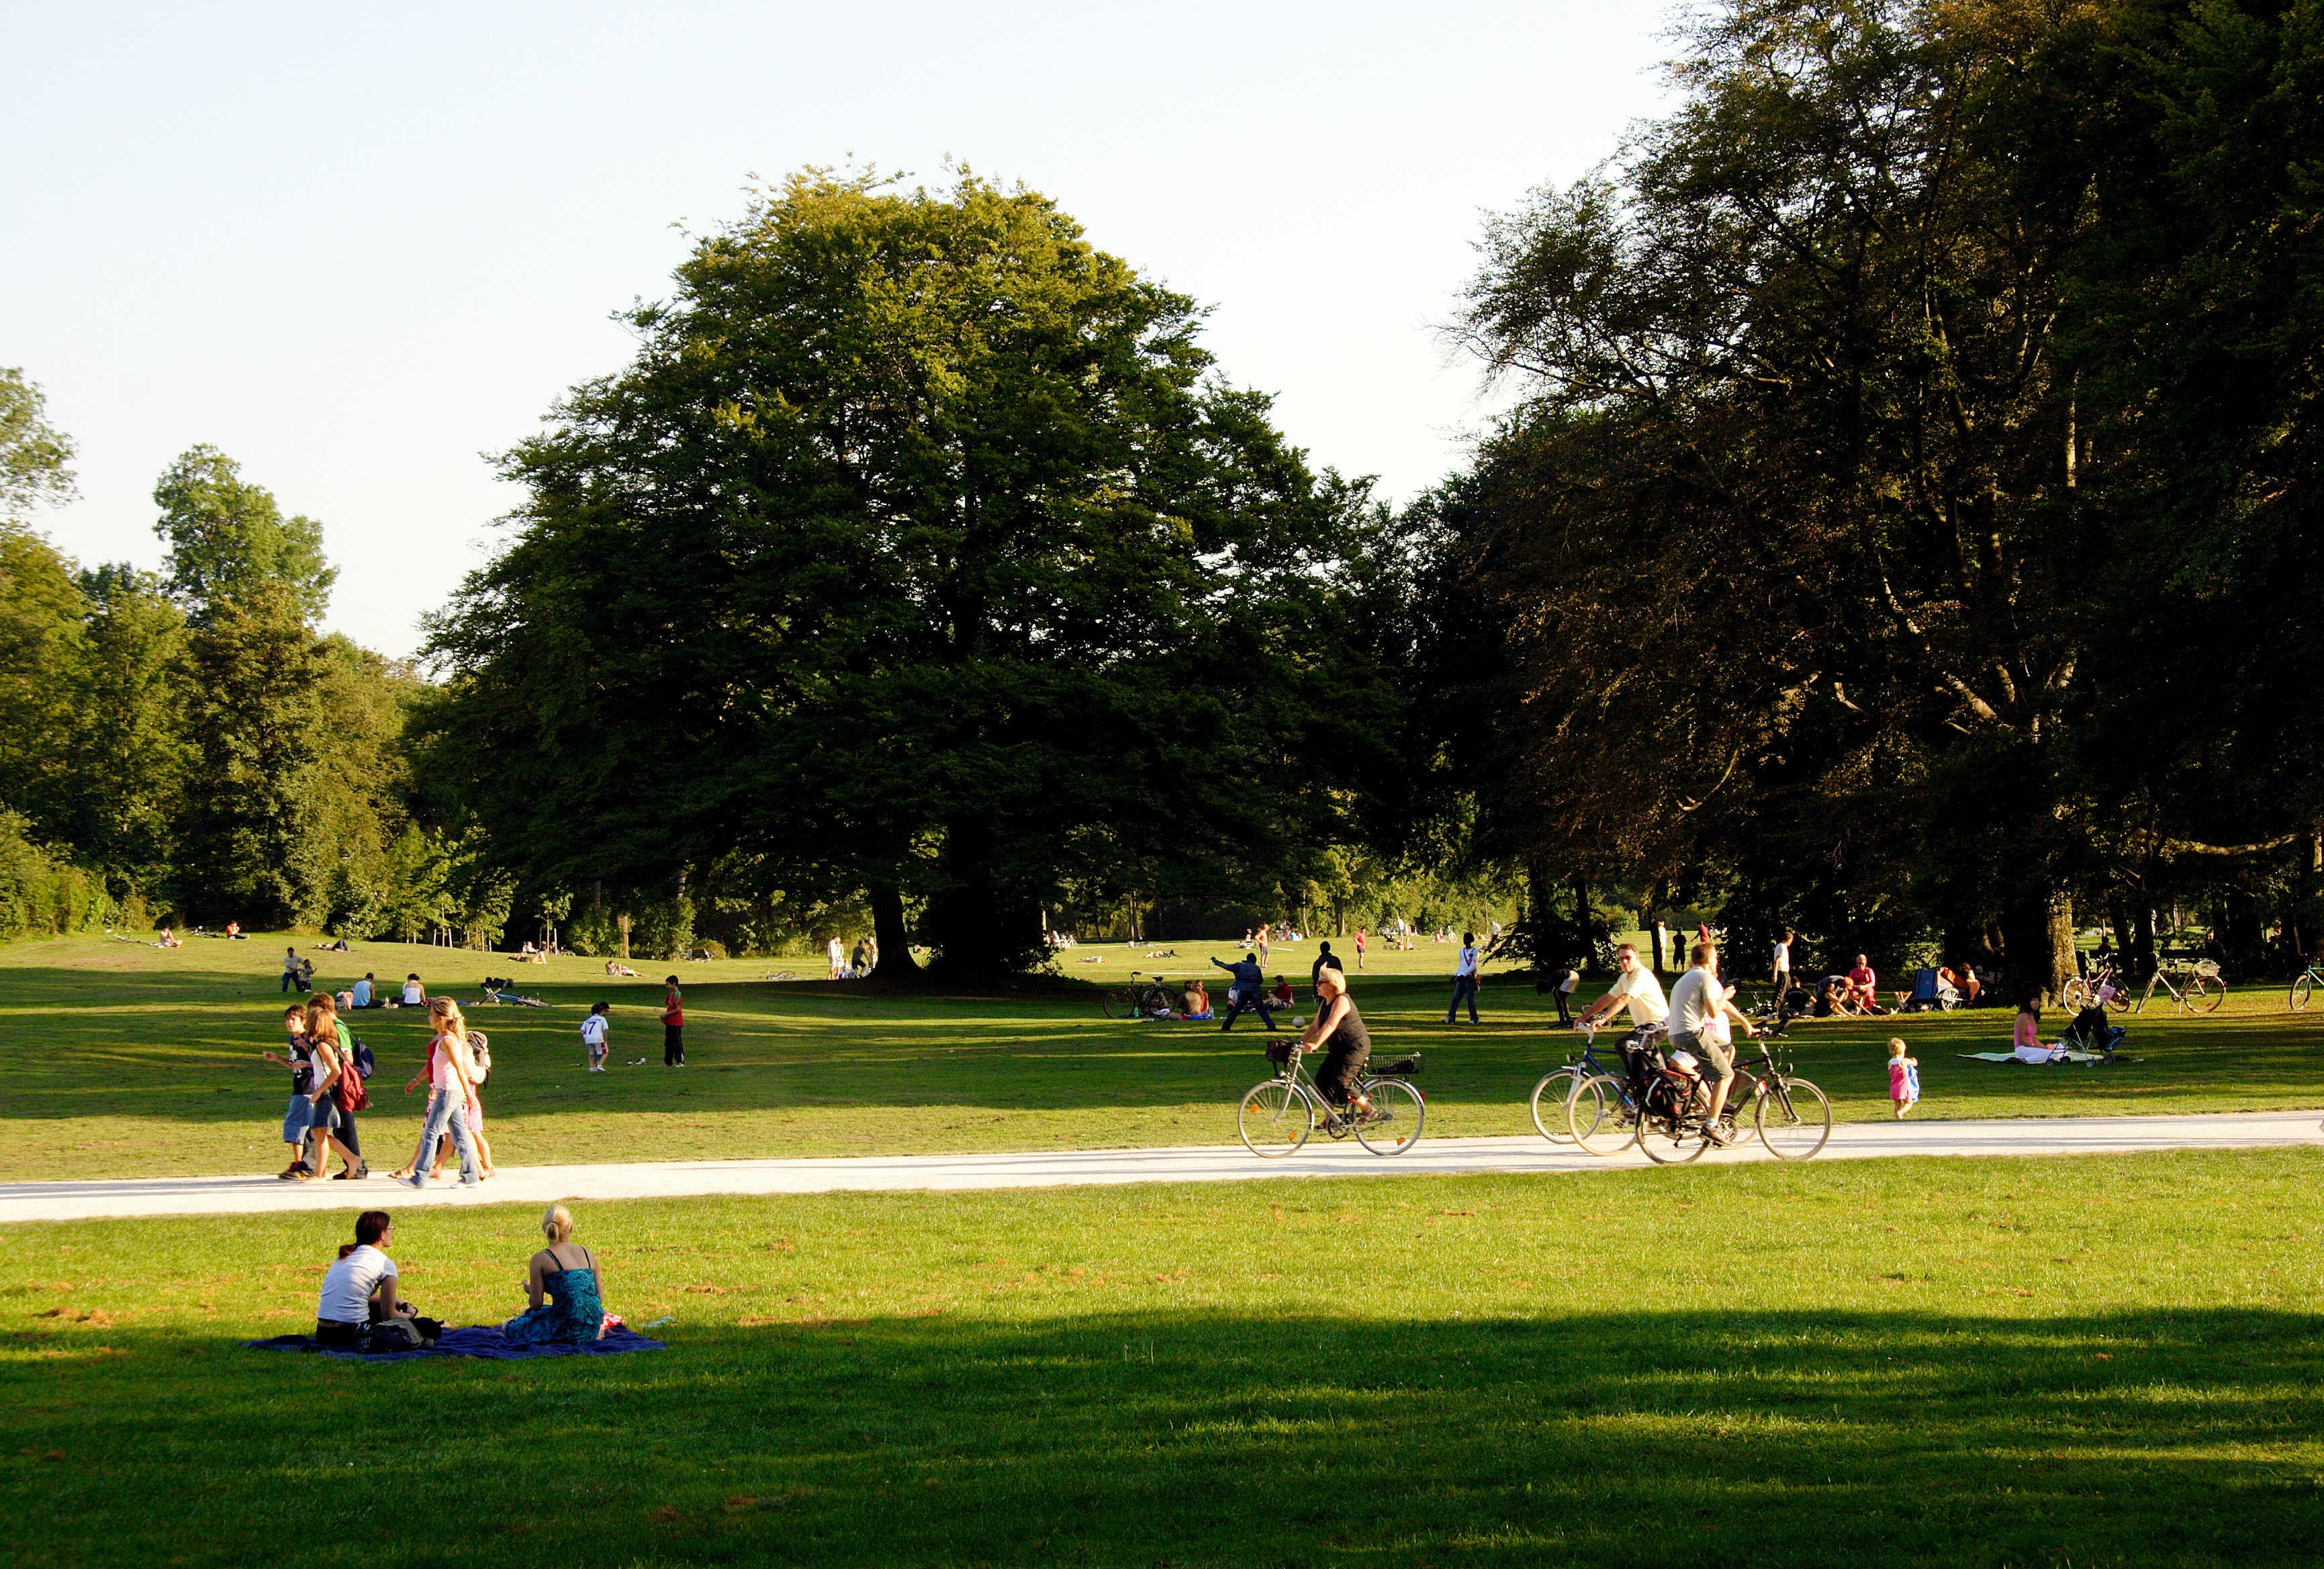 Many people enjoy the afternoon sun on the meadows of the English Garden, sitting and lying; others walk or ride a bicycle.